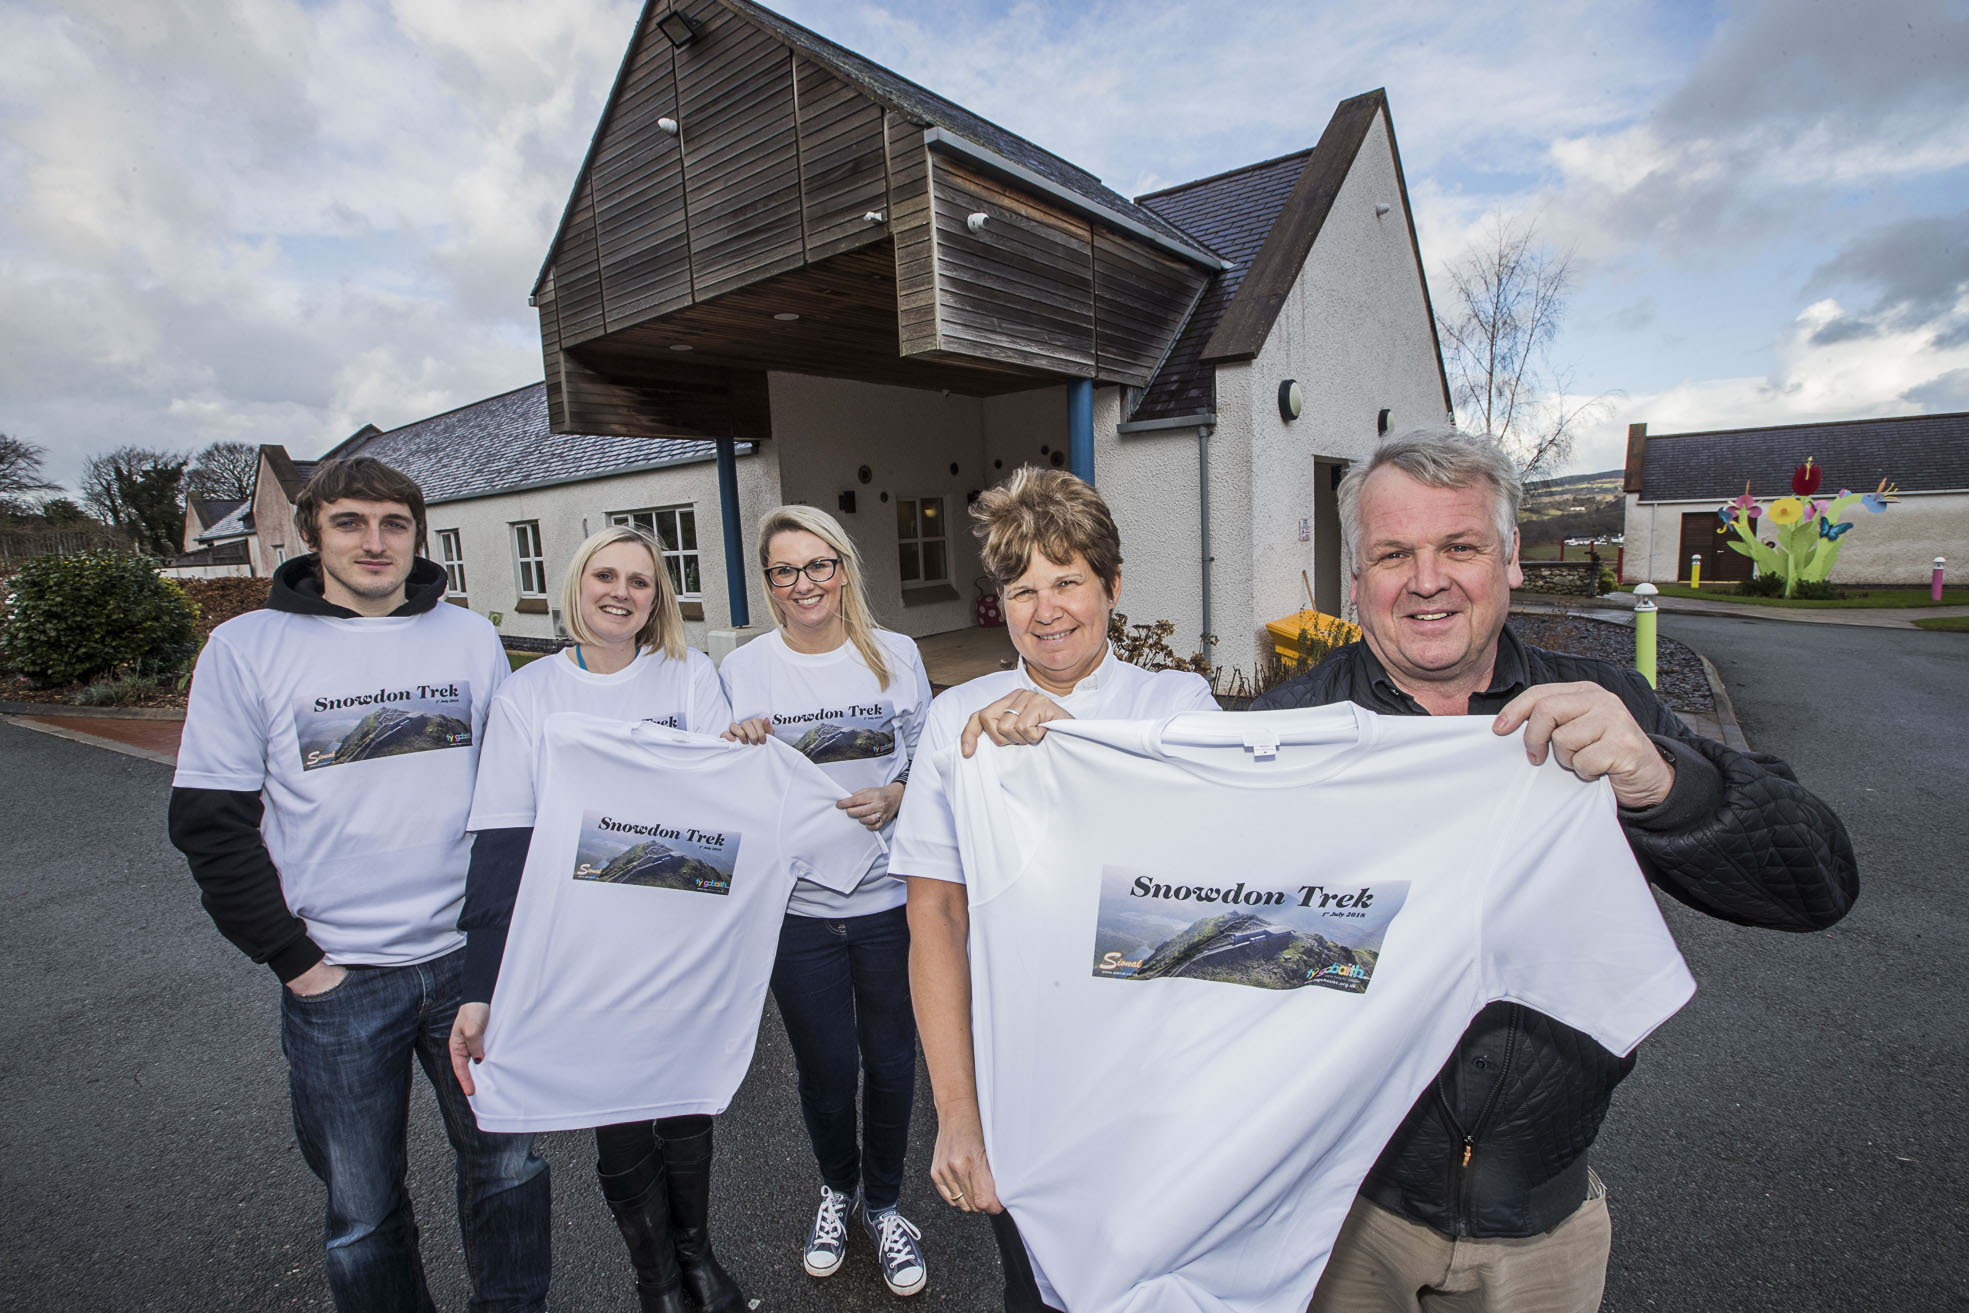 Alana and Sioned Jones at Ty Gobaith with Snowdon Trek t-shirts with Anthony Jones and fundraisers Hannah Penney and Amanda Jones.